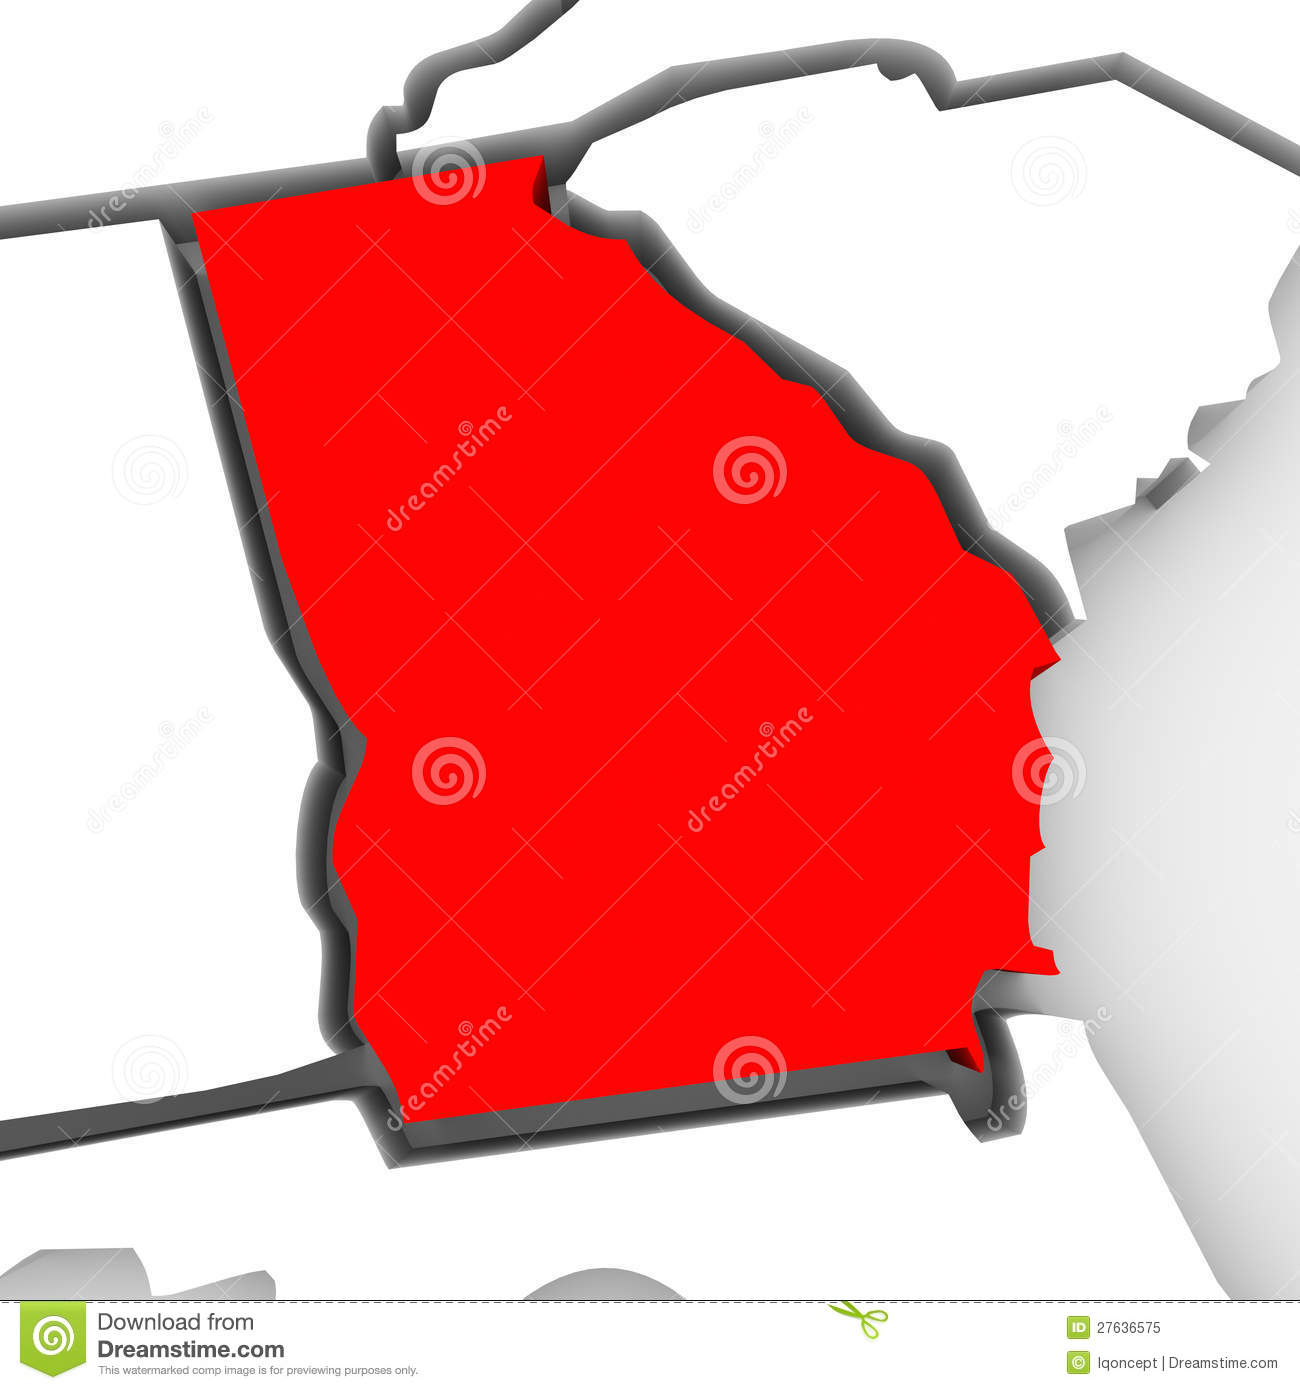 Georgia on us map clipart picture freeuse stock Georgia Red Abstract 3D State Map United States America Royalty ... picture freeuse stock